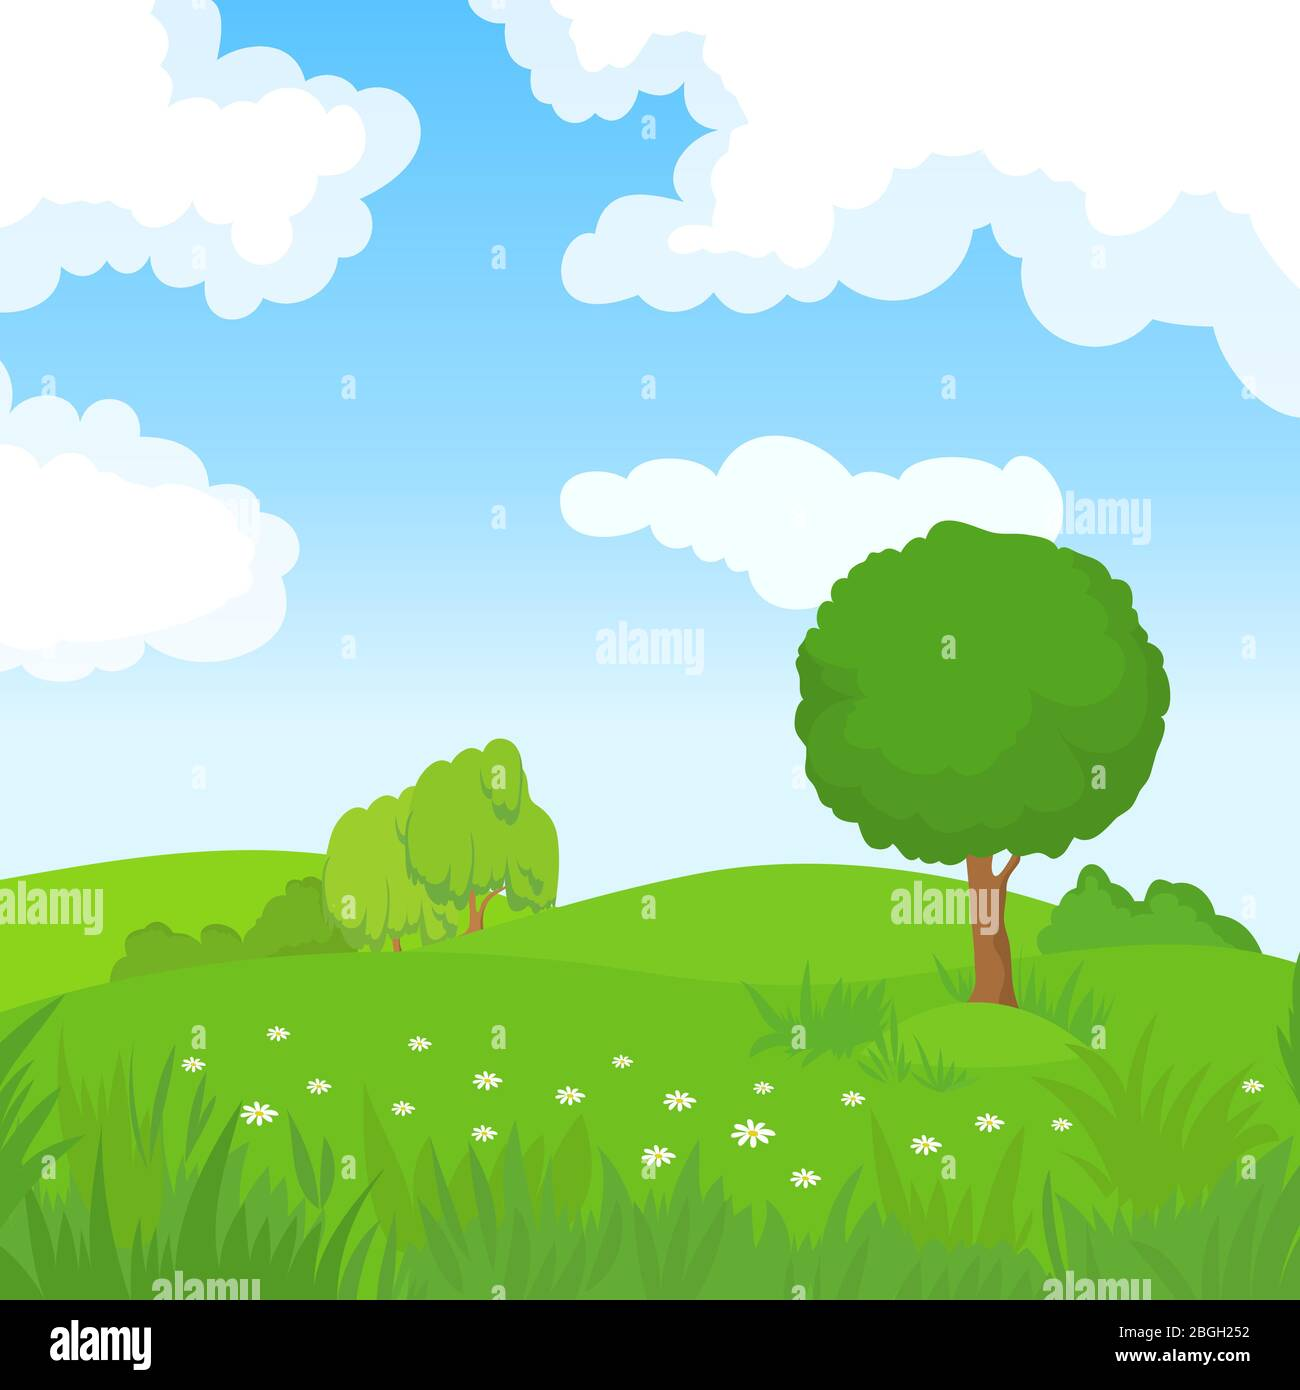 Cartoon Summer Landscape With Green Trees And White Clouds In Blue Sky Forest Park Panoramic Vector Background Summer Green Park Nature Landscape Field Grass Illustration Stock Vector Image Art Alamy Download tree cartoon stock vectors. https www alamy com cartoon summer landscape with green trees and white clouds in blue sky forest park panoramic vector background summer green park nature landscape field grass illustration image354416750 html